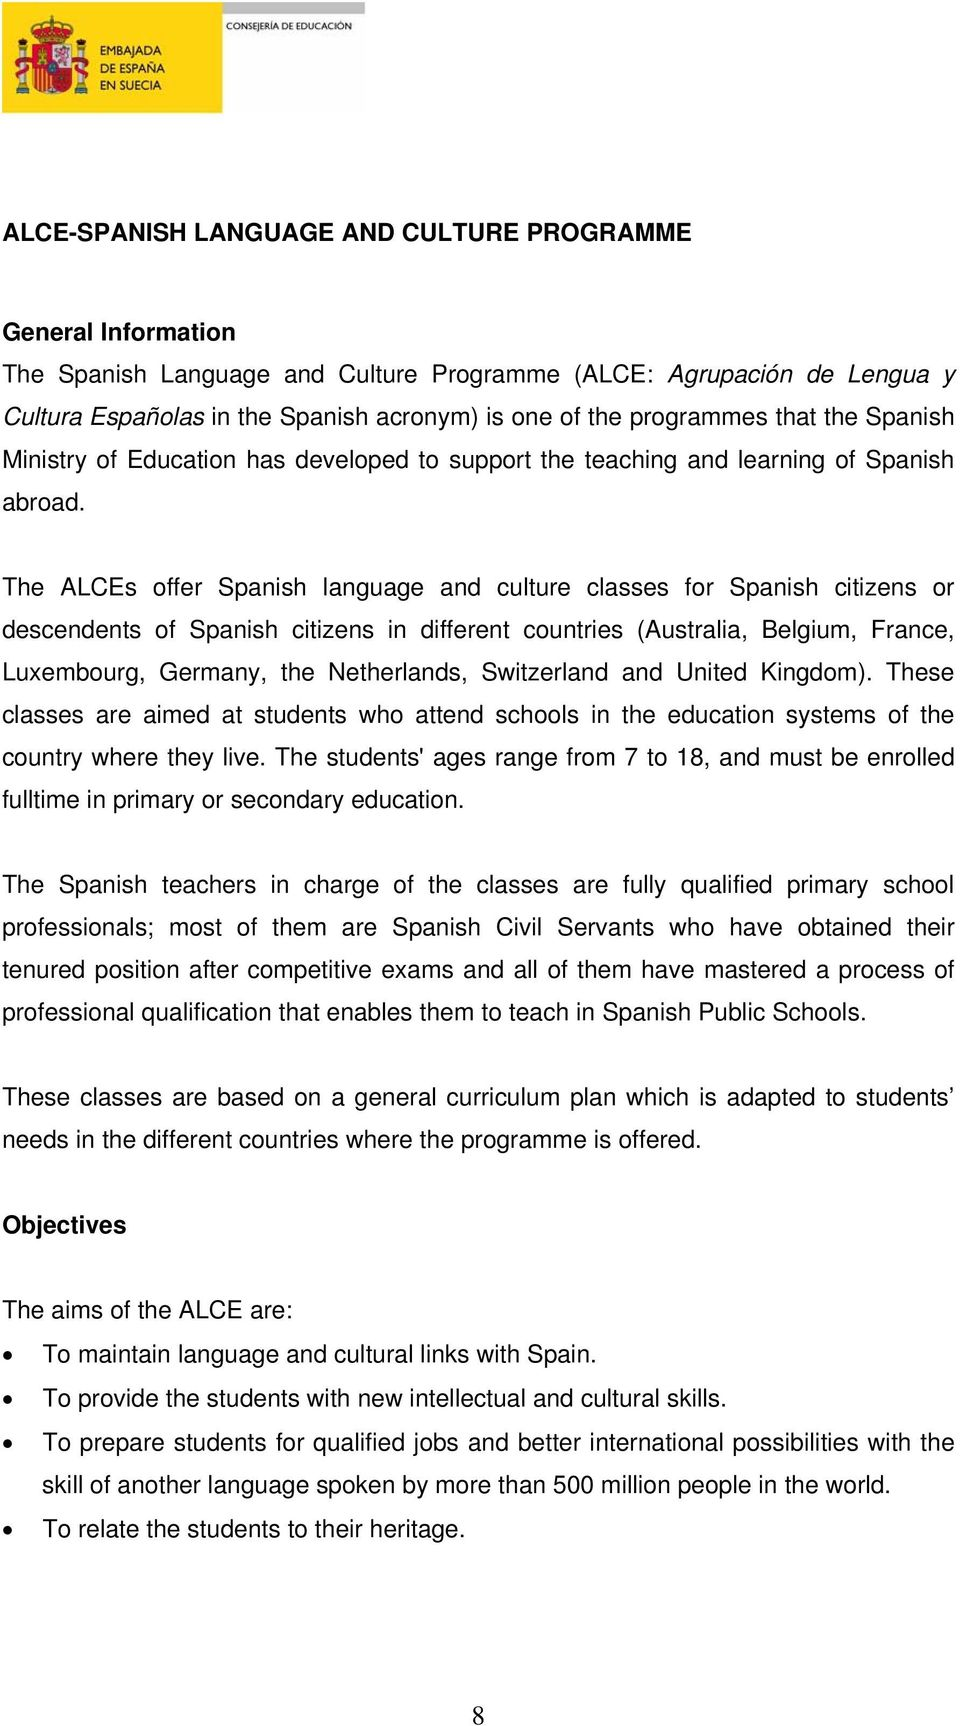 The ALCEs offer Spanish language and culture classes for Spanish citizens or descendents of Spanish citizens in different countries (Australia, Belgium, France, Luxembourg, Germany, the Netherlands,